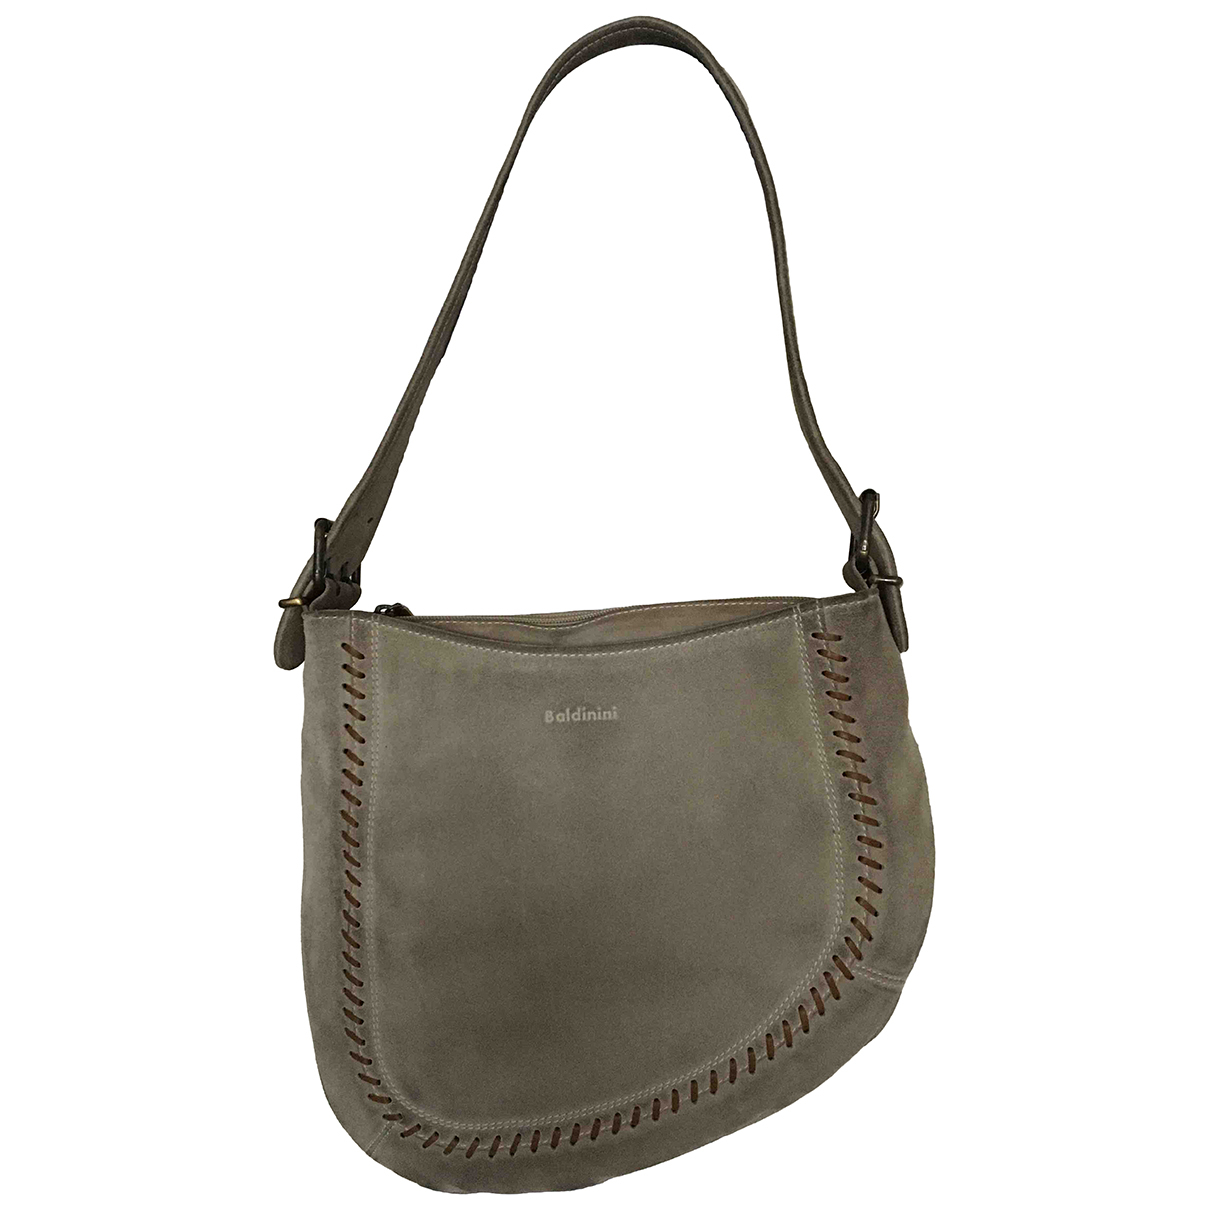 Baldinini N Grey Suede handbag for Women N